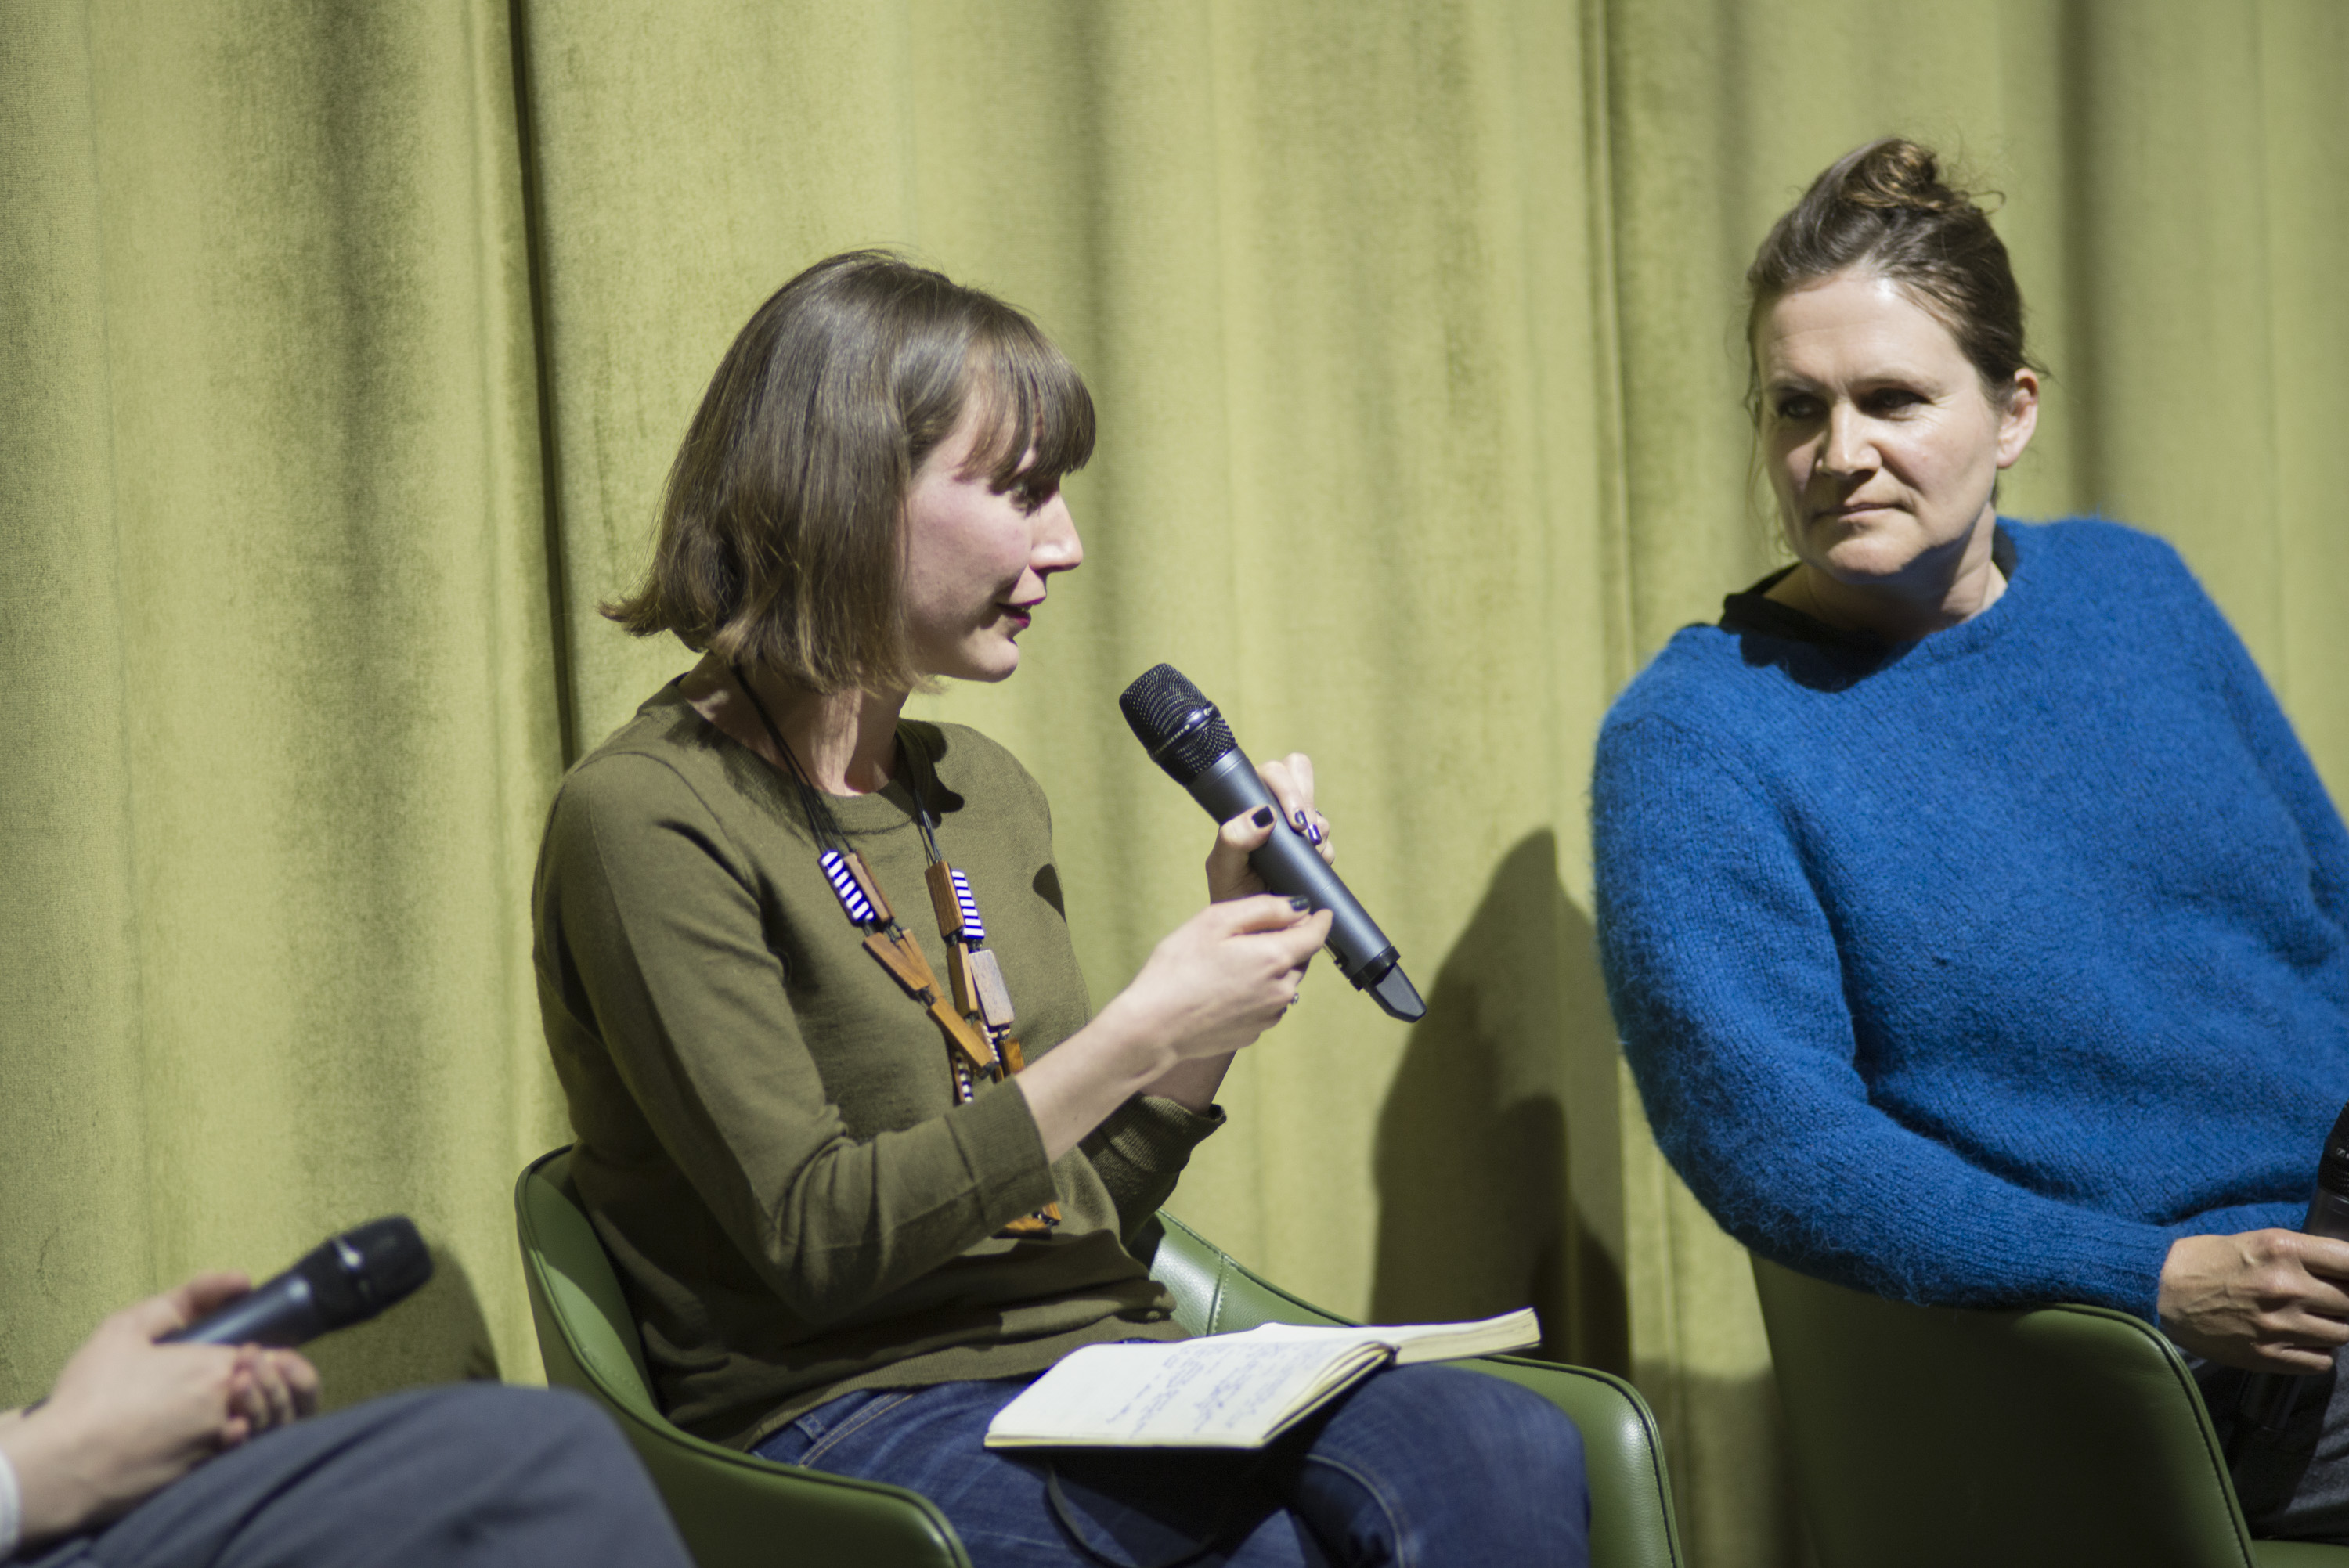 Erika Balsom in the panel discussion